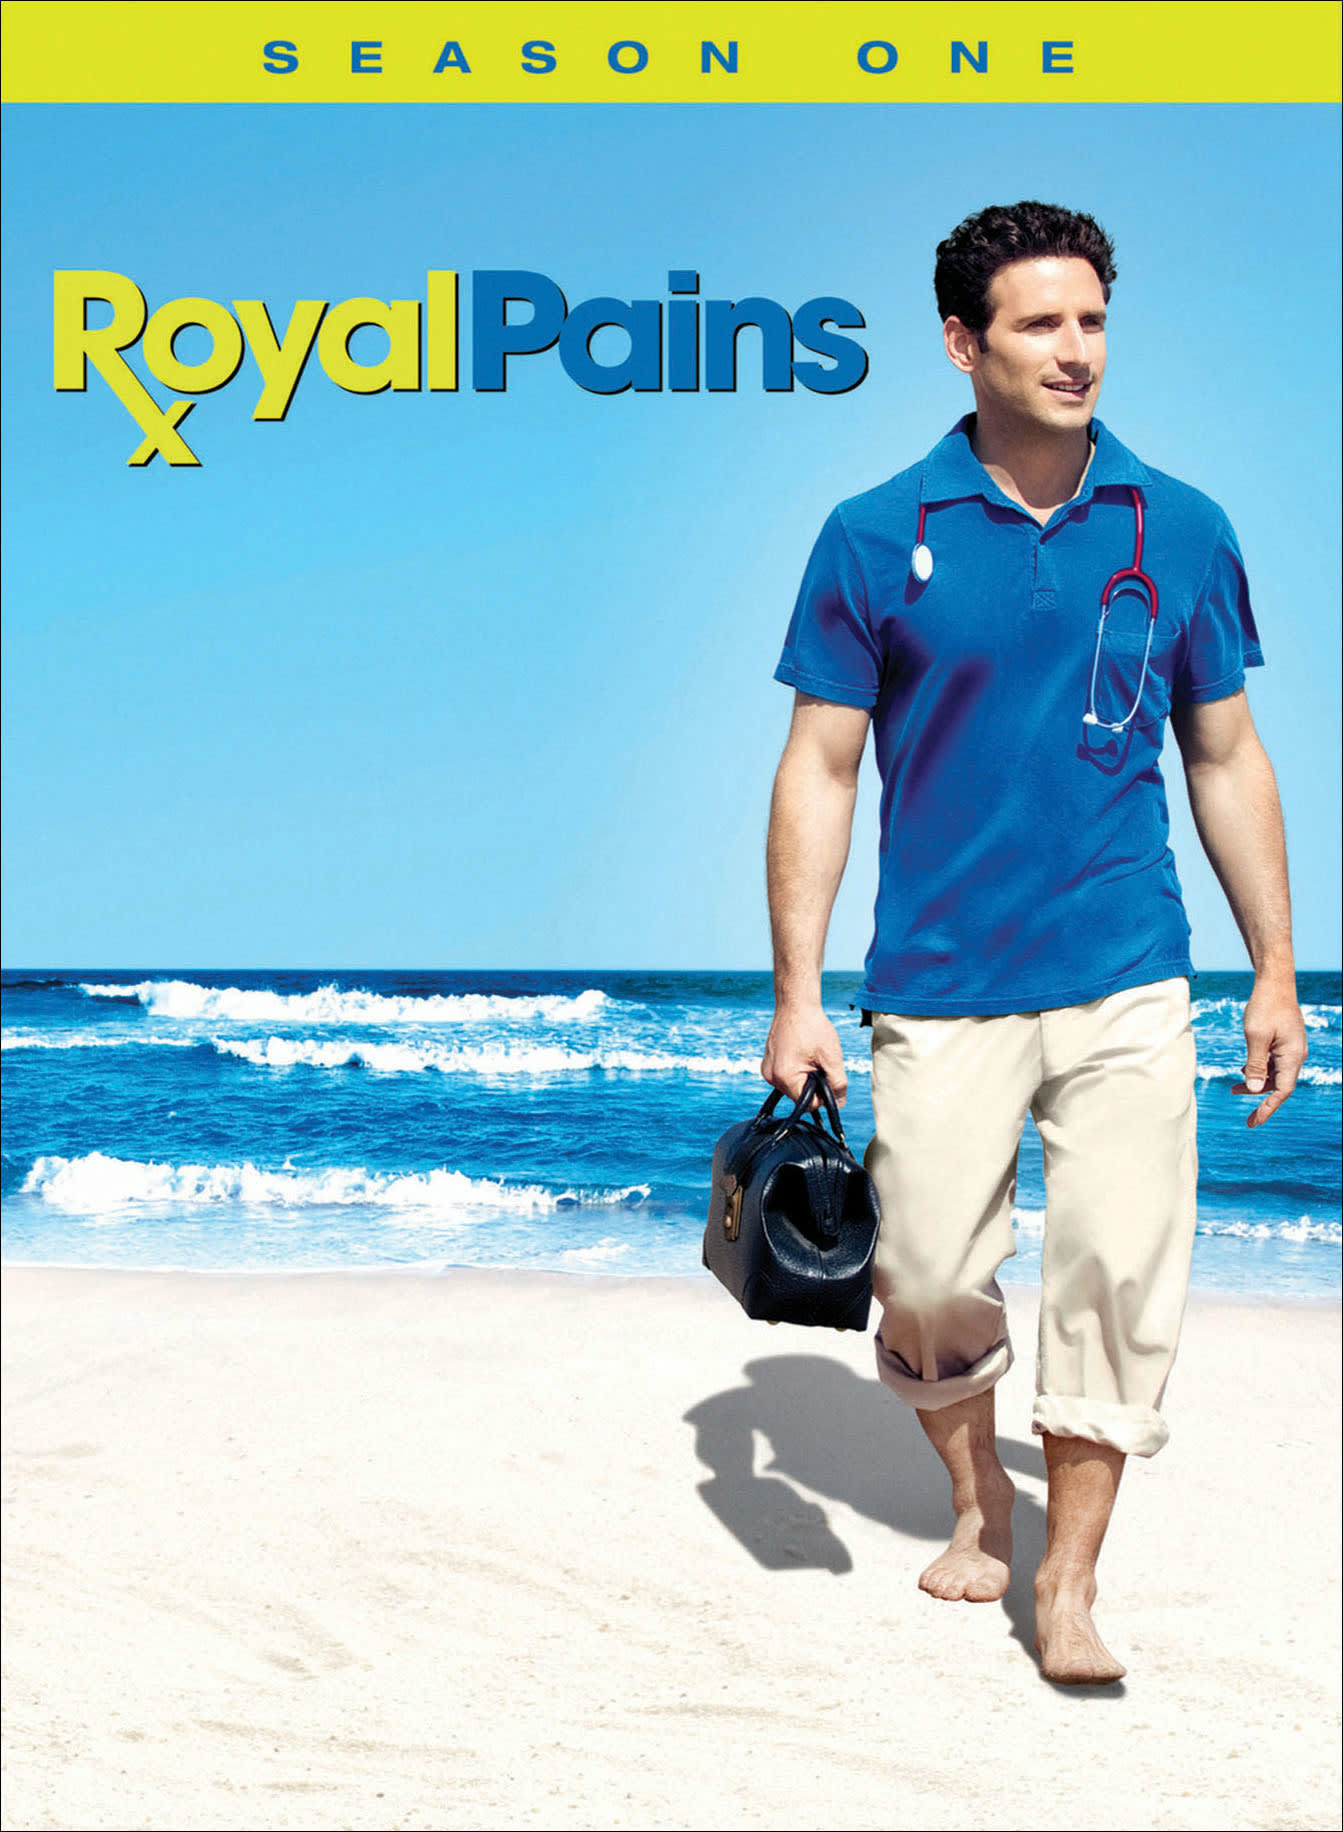 Royal Pains: Season One [DVD]